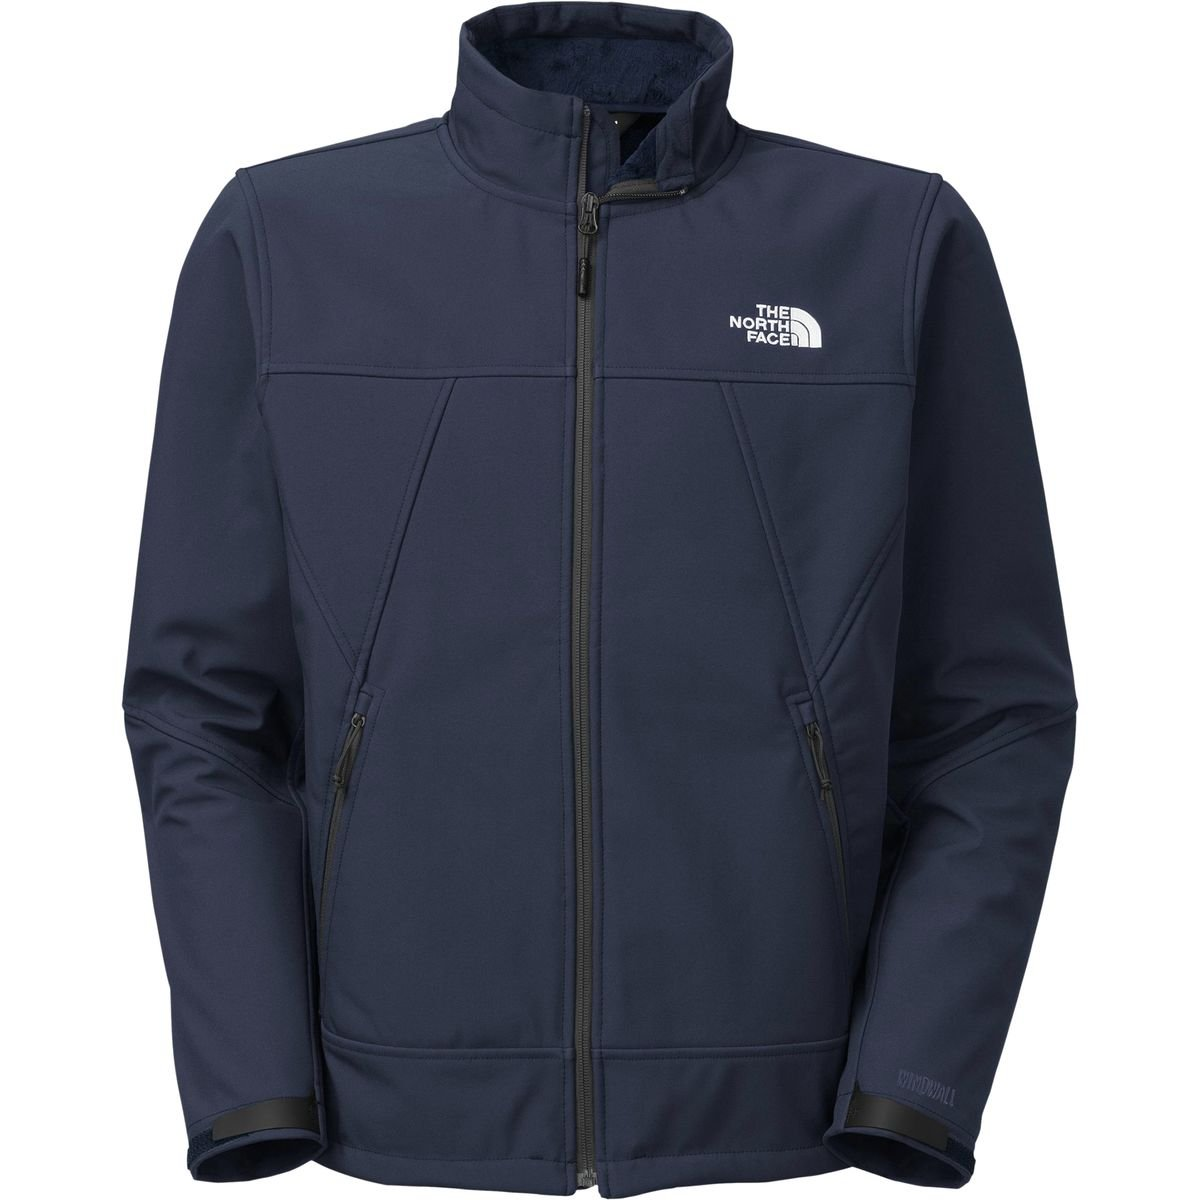 The North Face Apex Chromium Thermal Jacket Mens Cosmic Blue/Cosmic Blue L